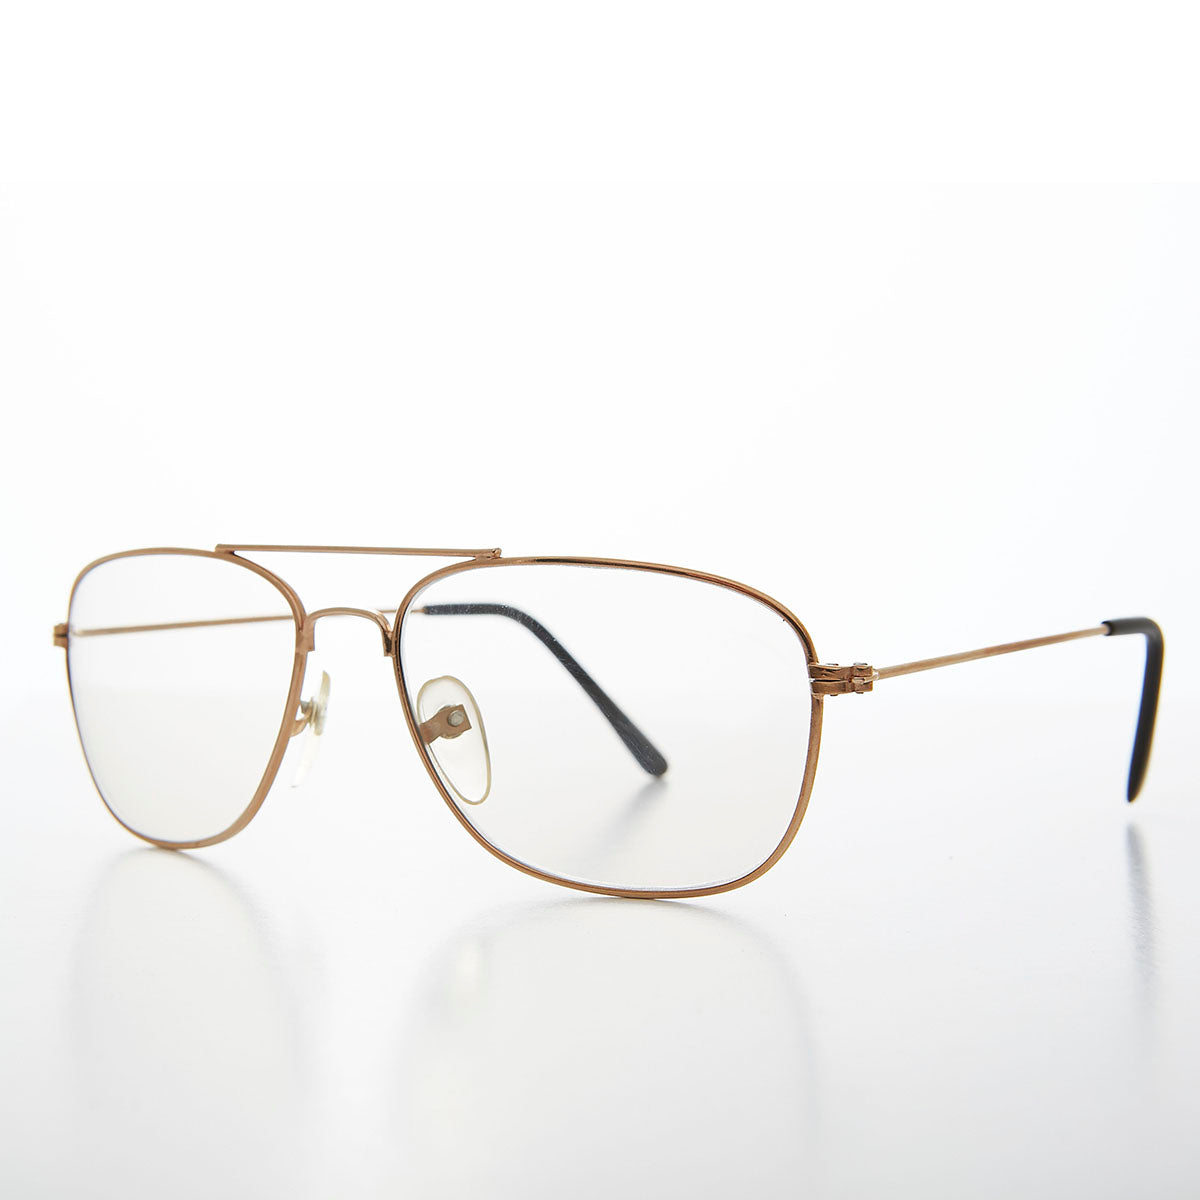 Photosun Square Aviator with Transition Glass Lens